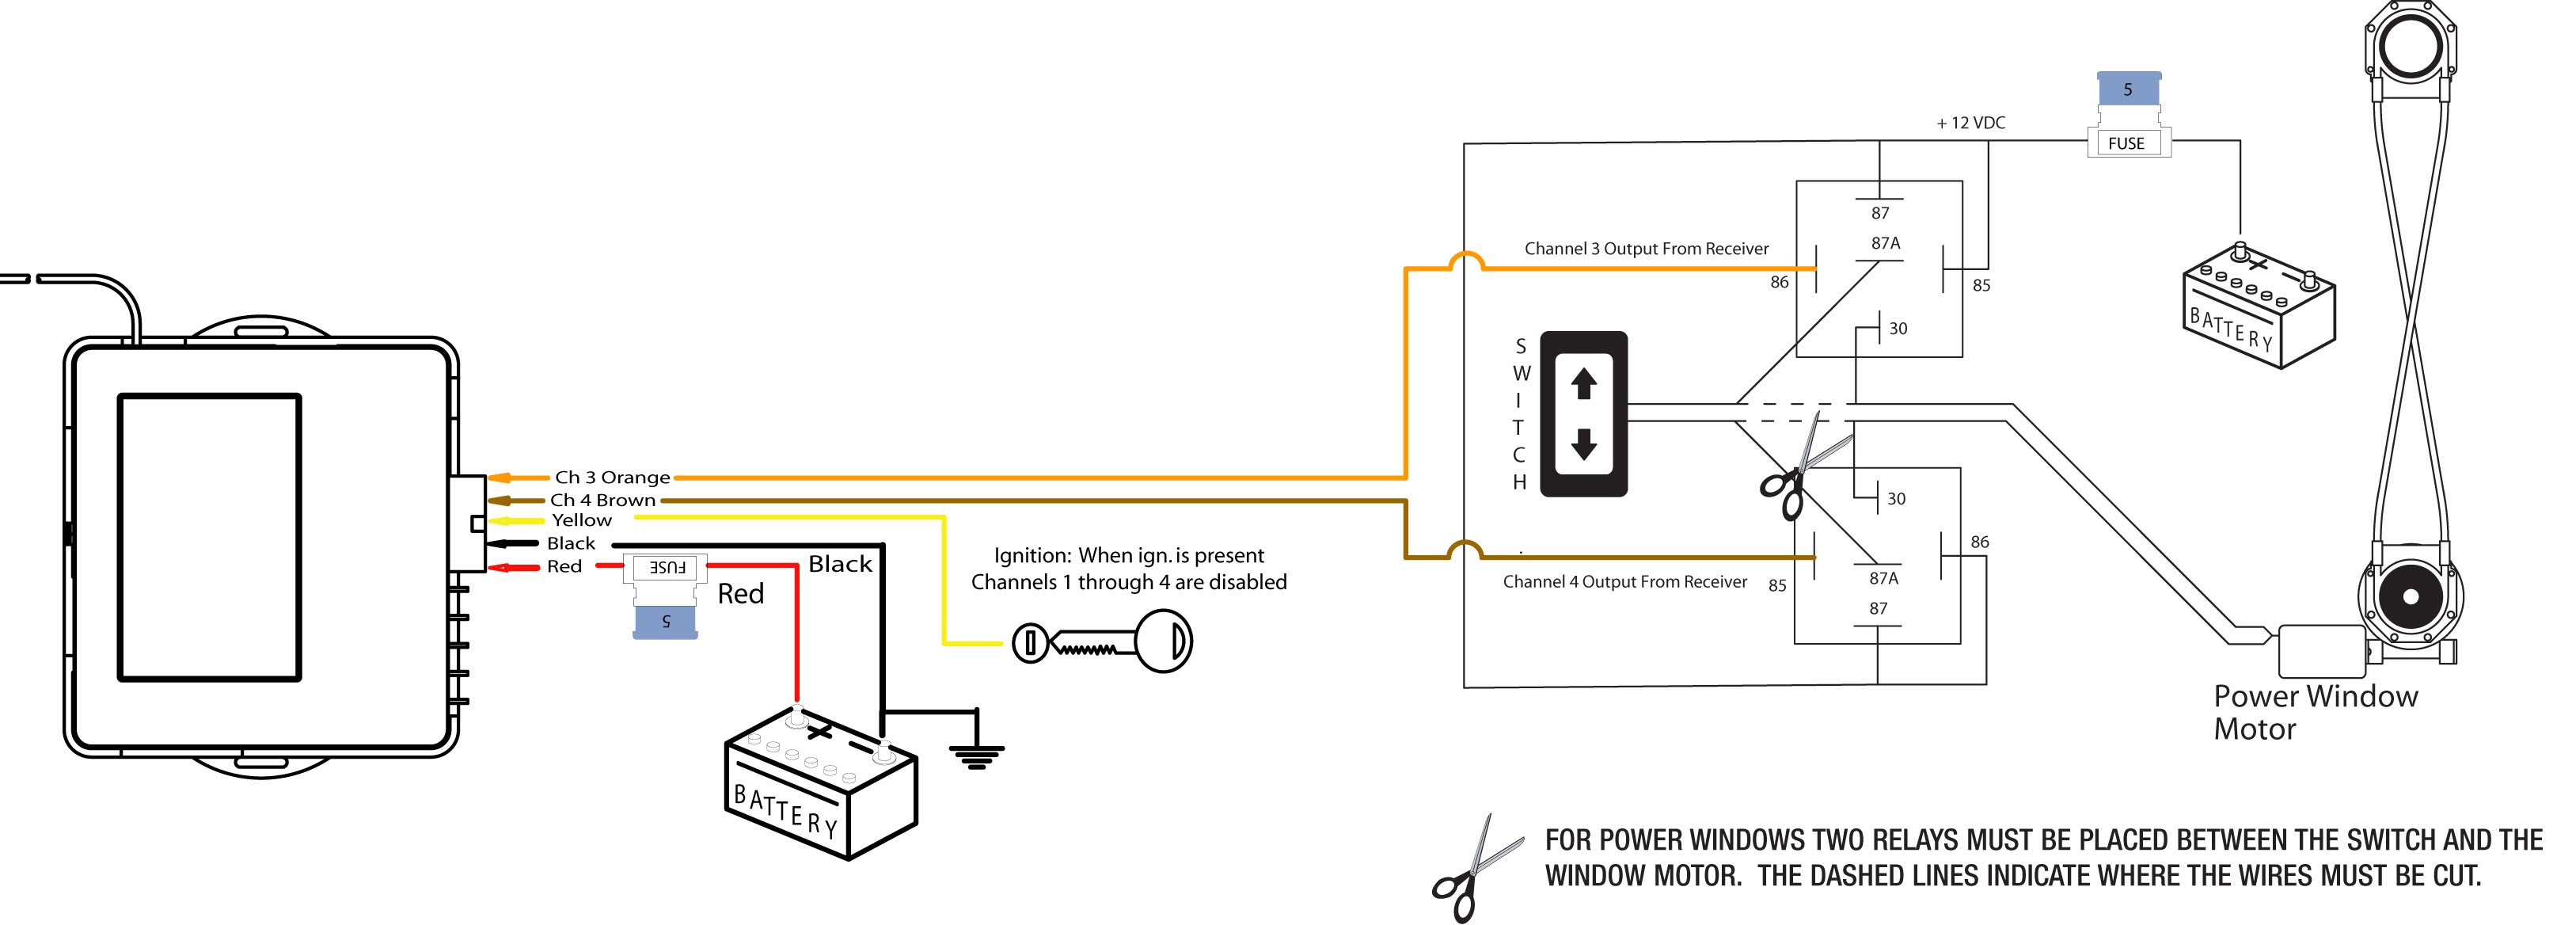 Electrical Wiring Diagram Central Lock from lh5.googleusercontent.com